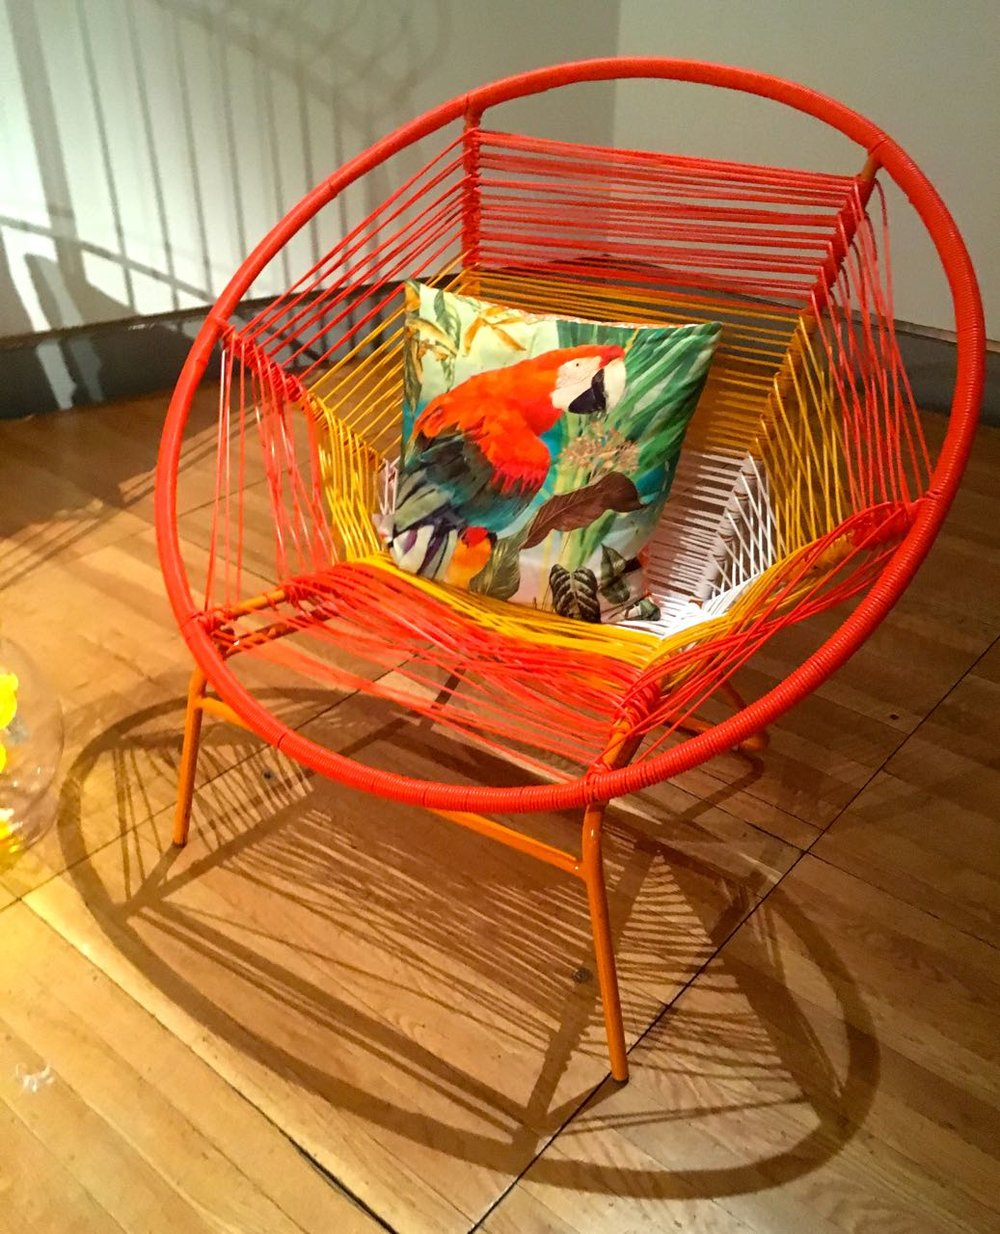 how about a circular chair, with that parrot I was talking about